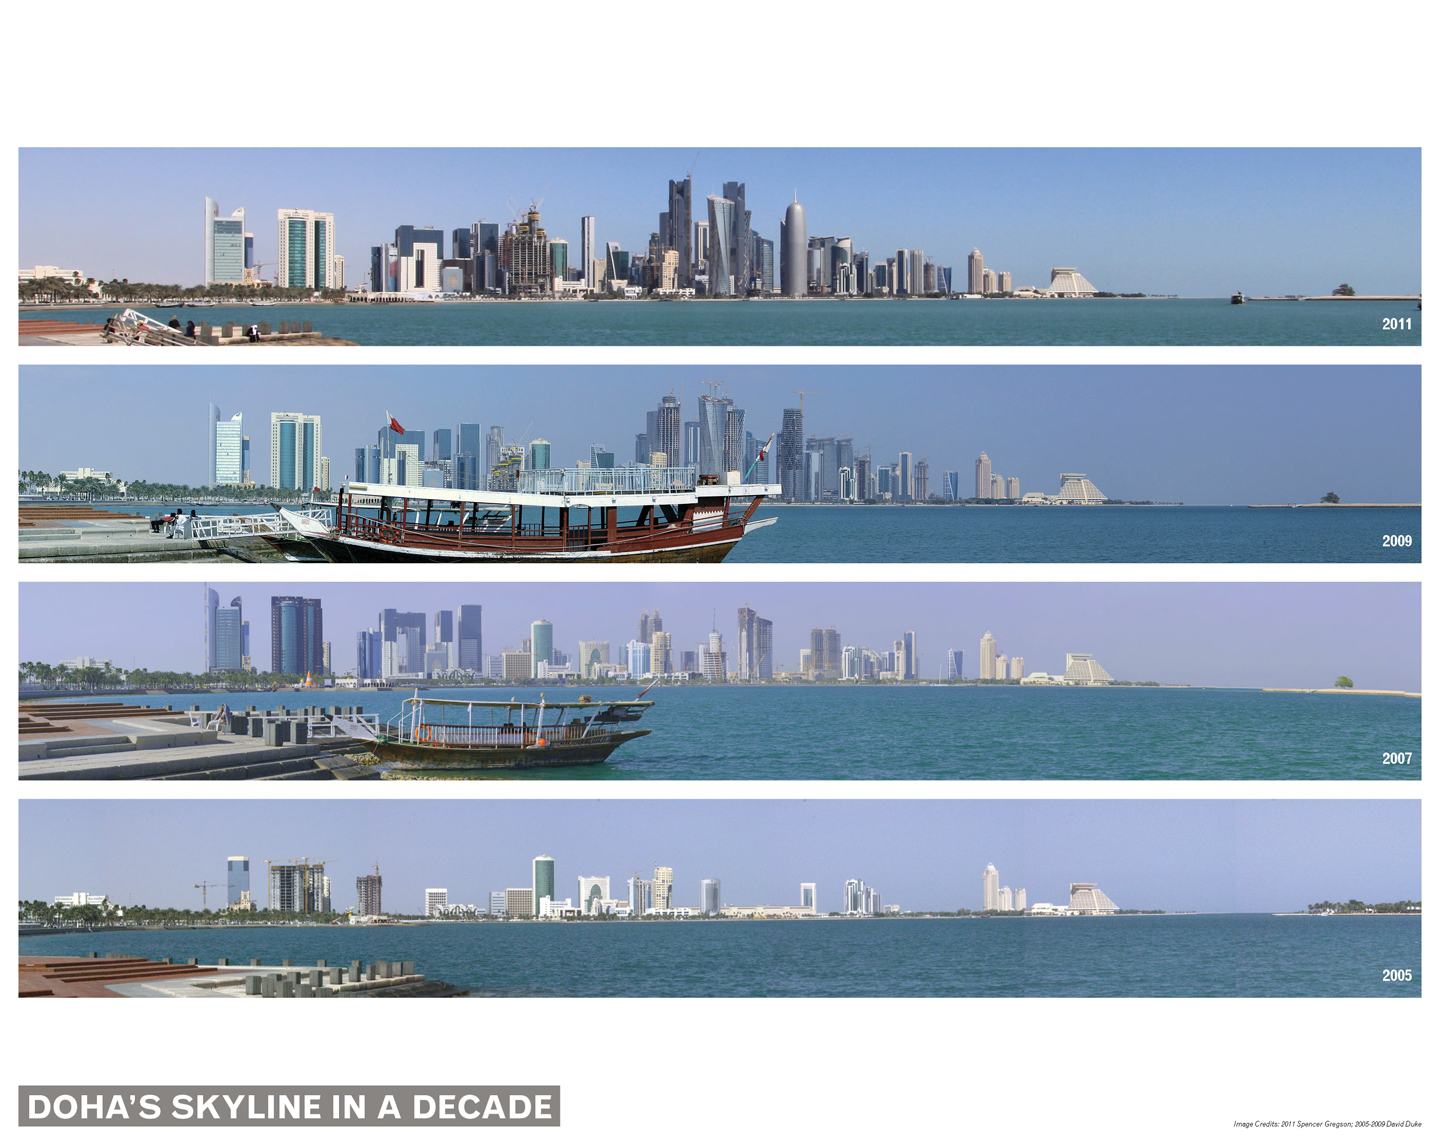 Doha's Skyline in a Decade